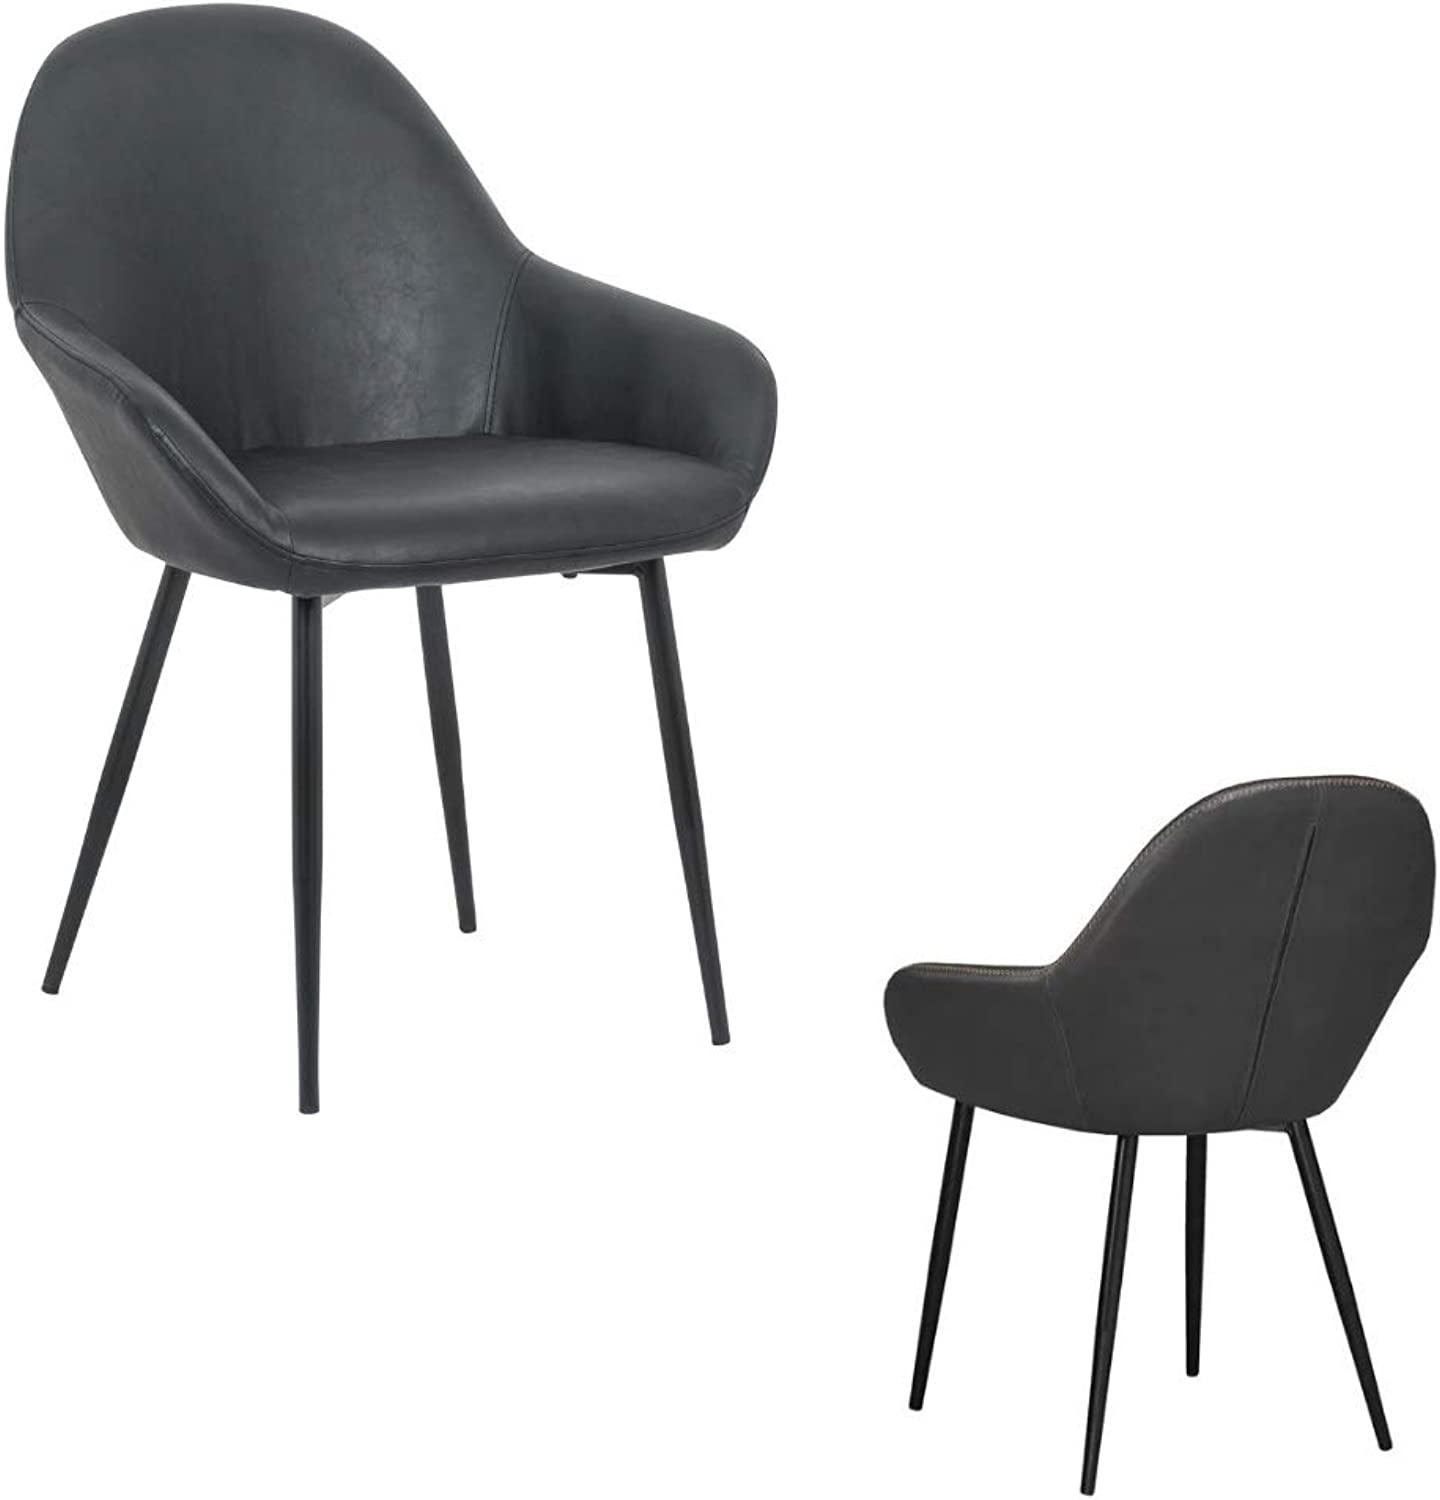 silver Import Burson Arm Chair in Black, Faux Leather with Black Metal Legs, Dining Chair, Chair